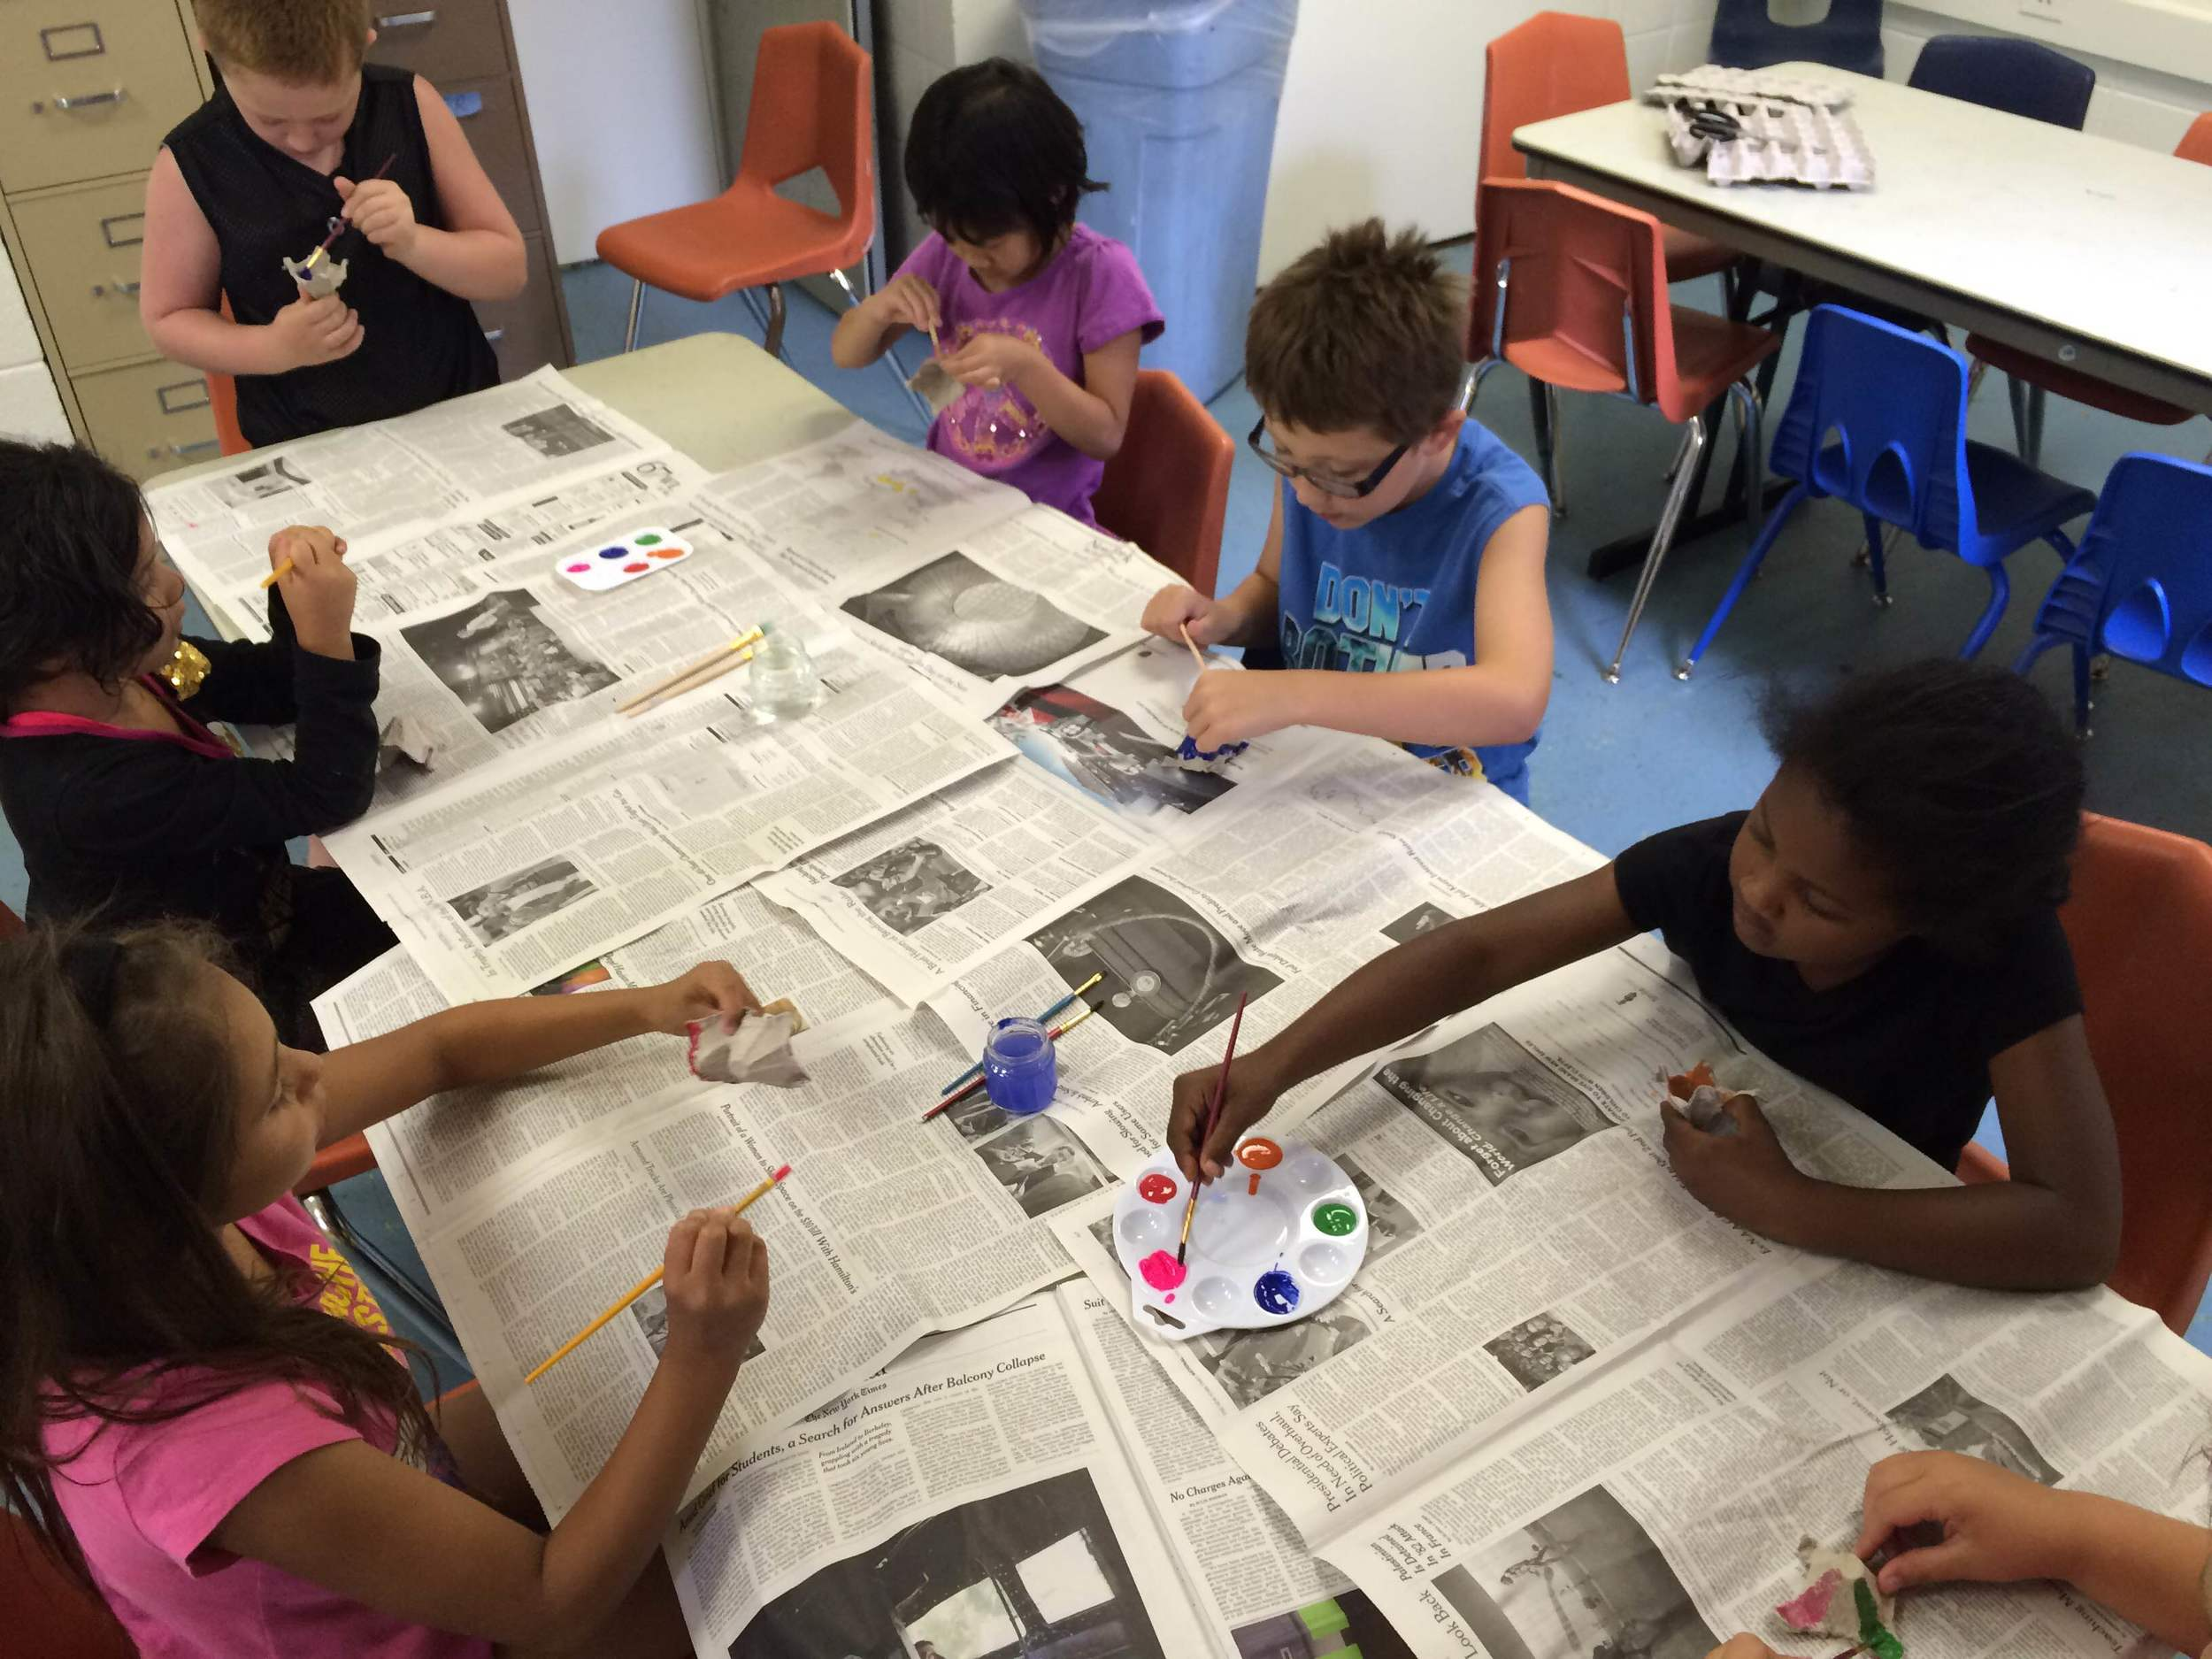 The children spent one of their first lessons decorating and personalizing their egg carton pots